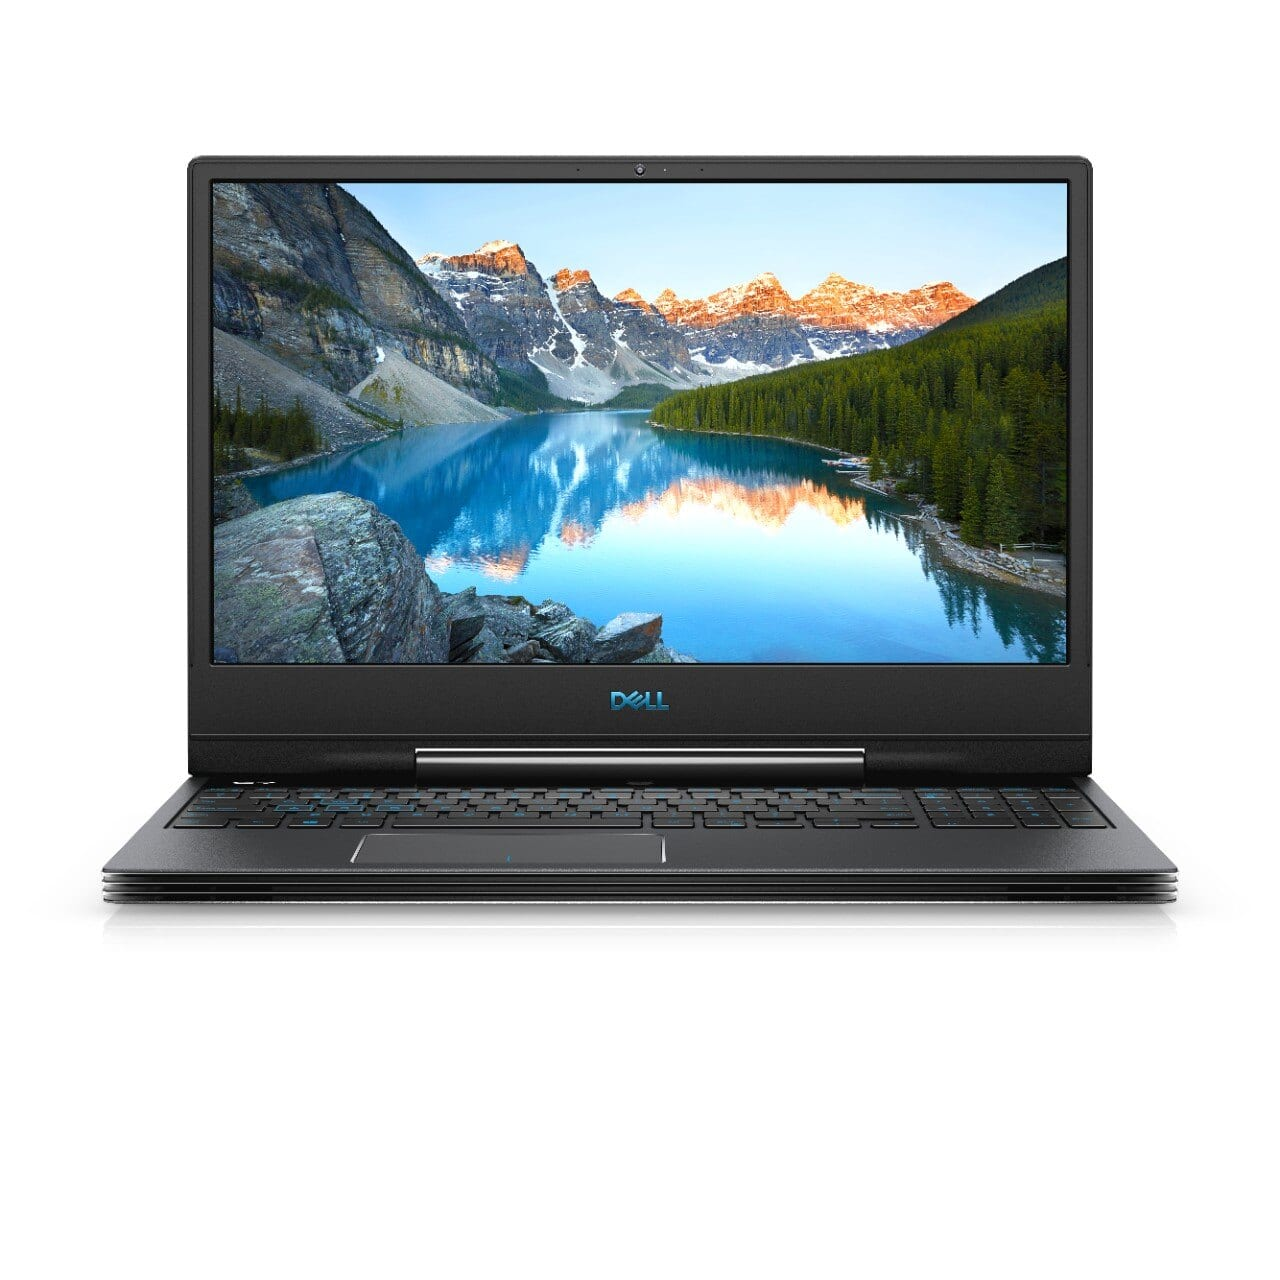 Dell G-Series 15 7590 Gaming Laptop 15.6in; Intel i7-9750H NVIDIA RTX 2060 256GB SSD + 1TB HDD 16GB RAM : $1399.99 +  $349.75  back in points + FS